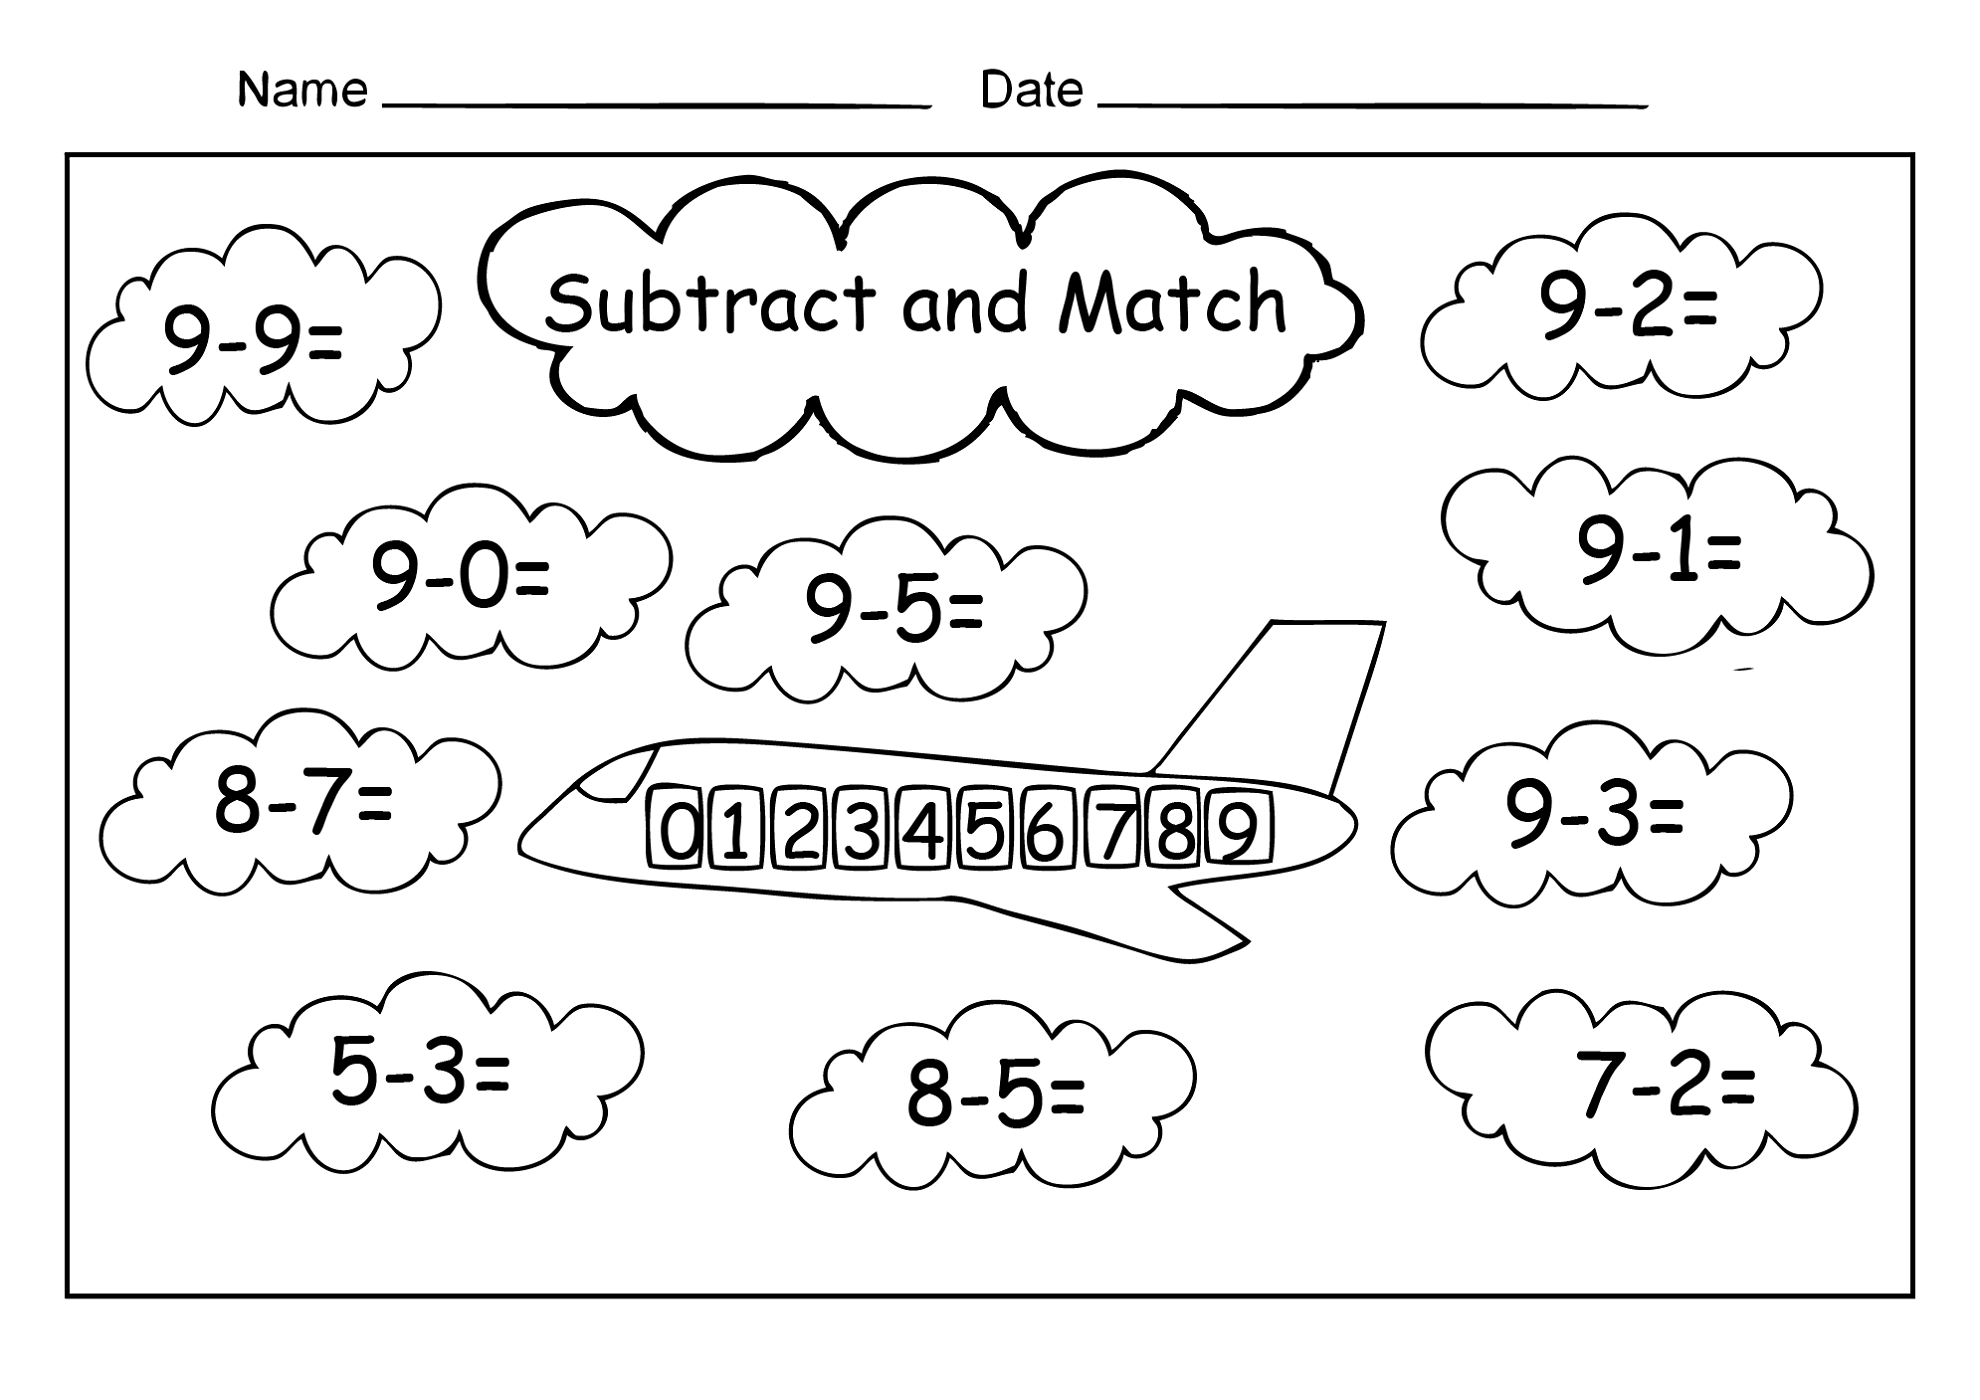 math worksheet : year 1 printable worksheets  math practice solved problems and  : Printable Math Worksheets For Grade 1